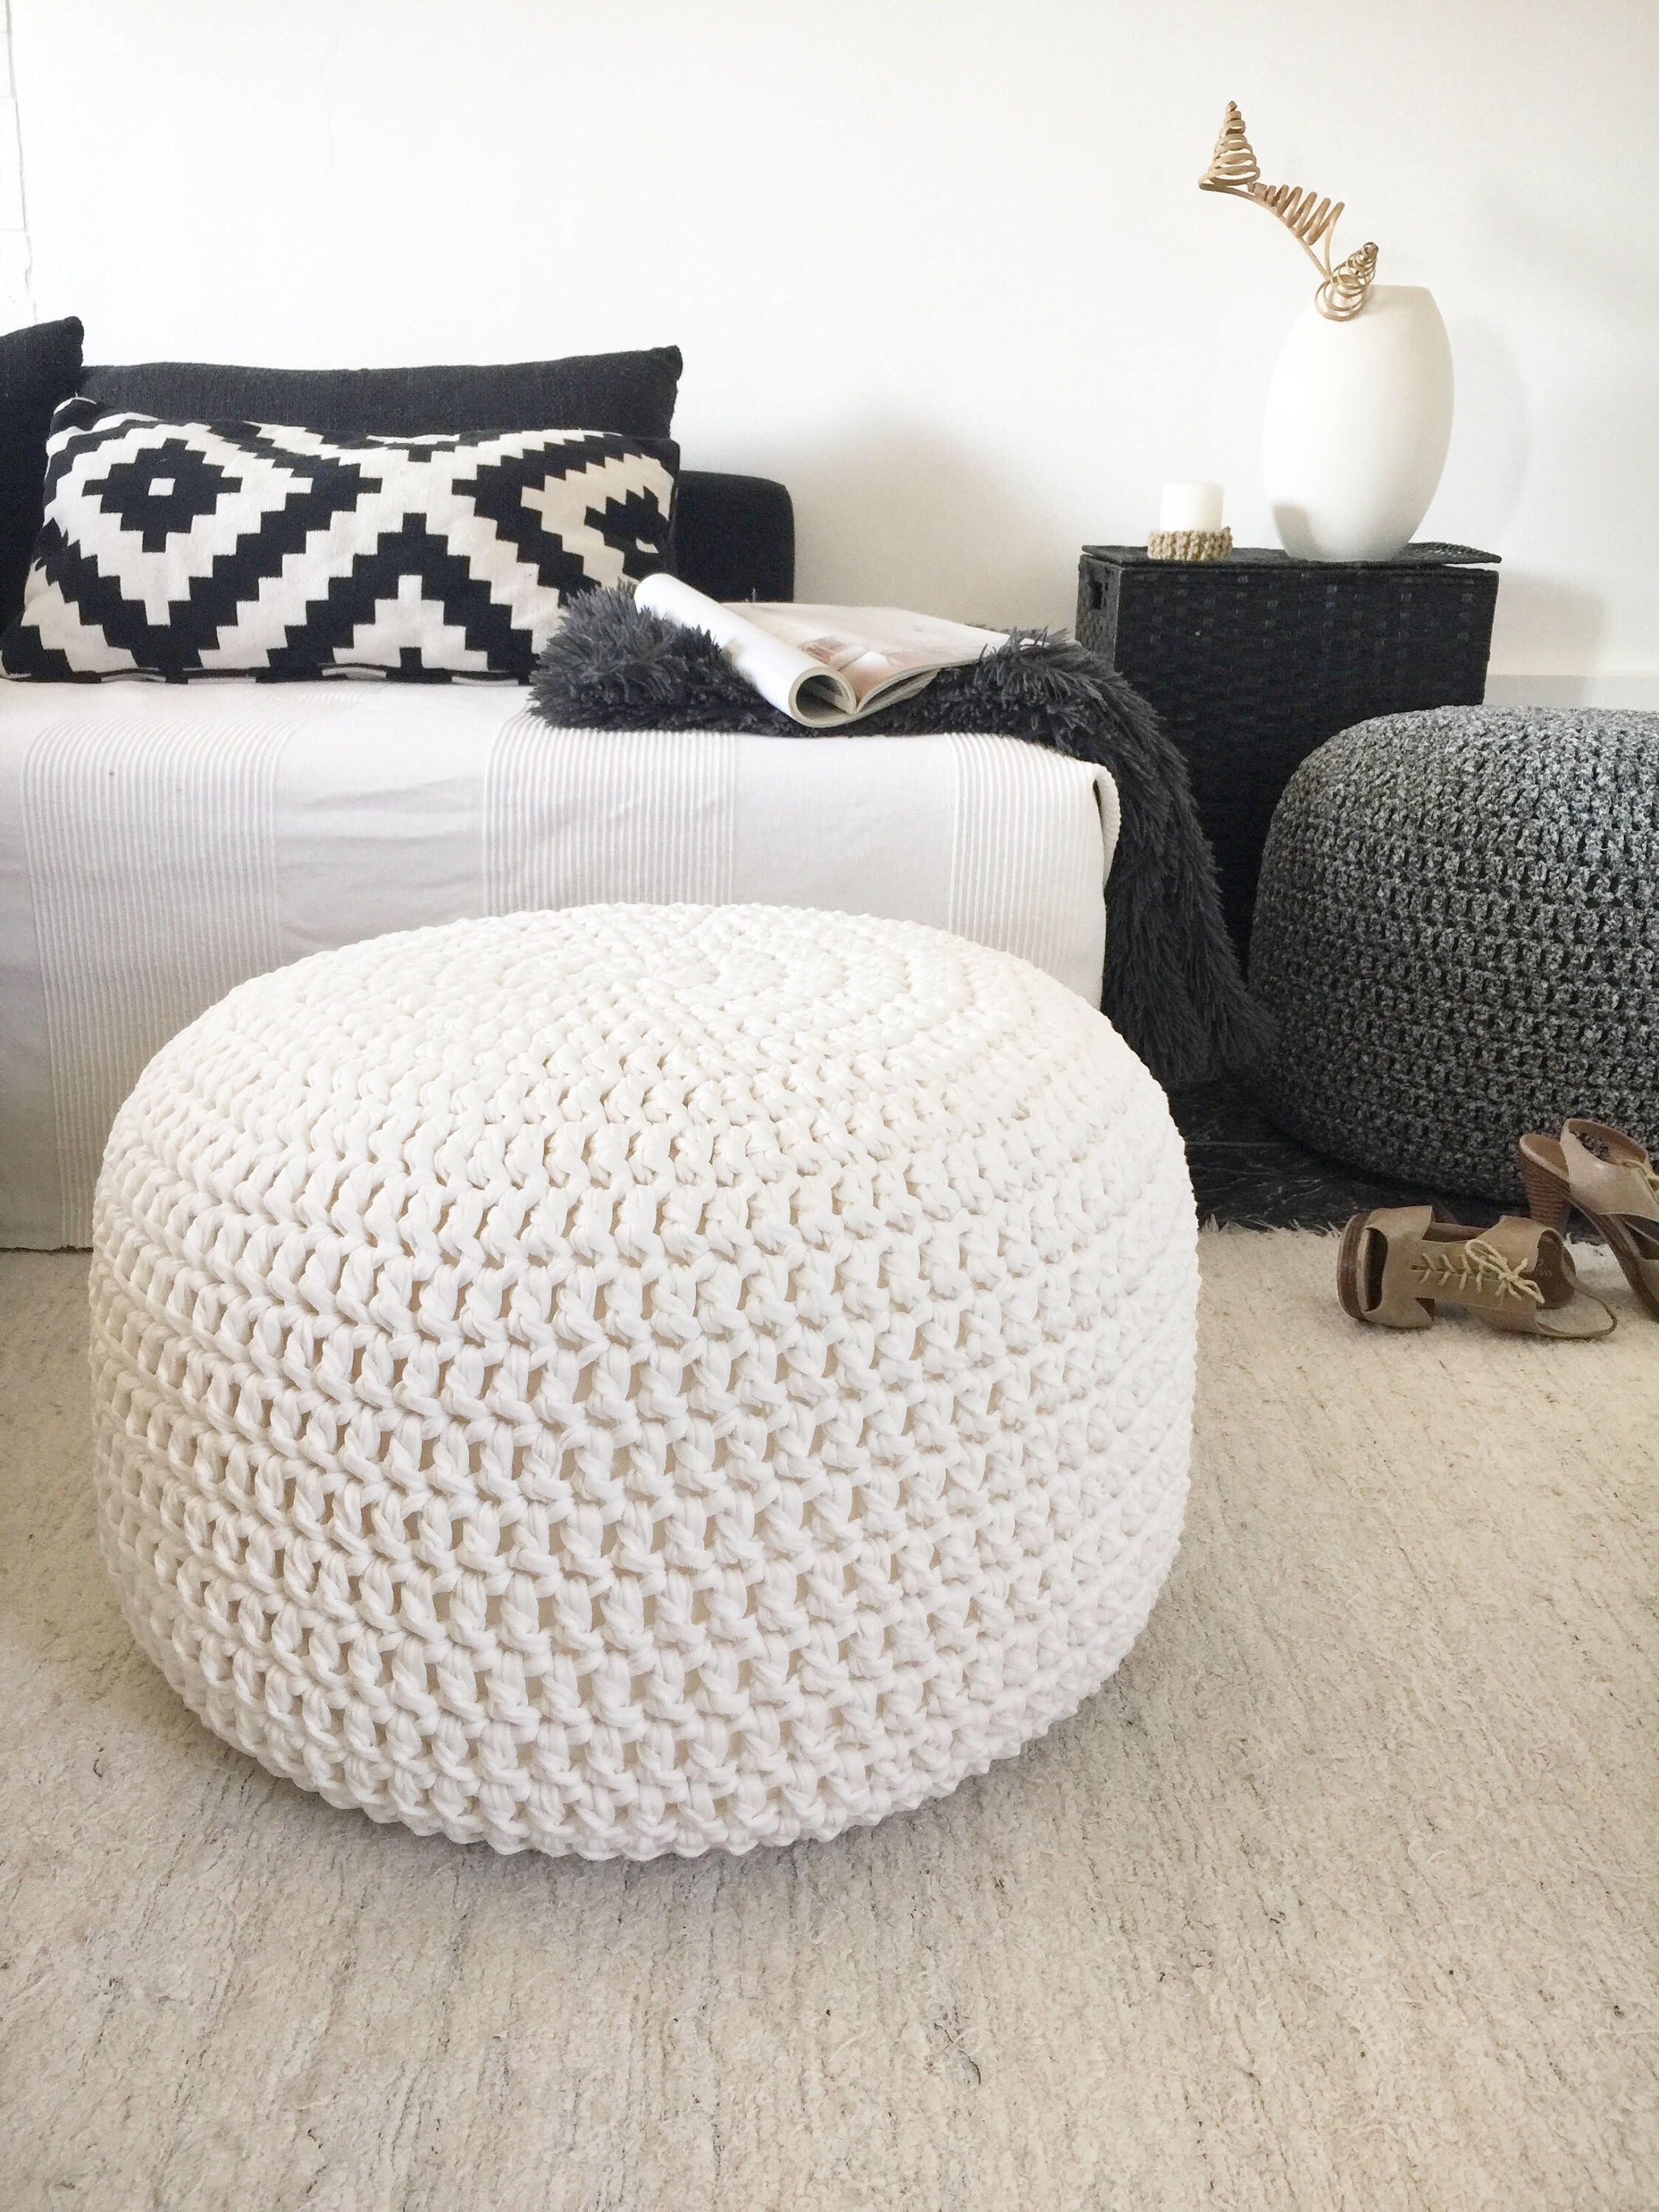 "Large Pouf Ottoman Cool Large Stuffed Crochet Pouf Ottoman Nursery Footstool 24"" Floor Design Inspiration"